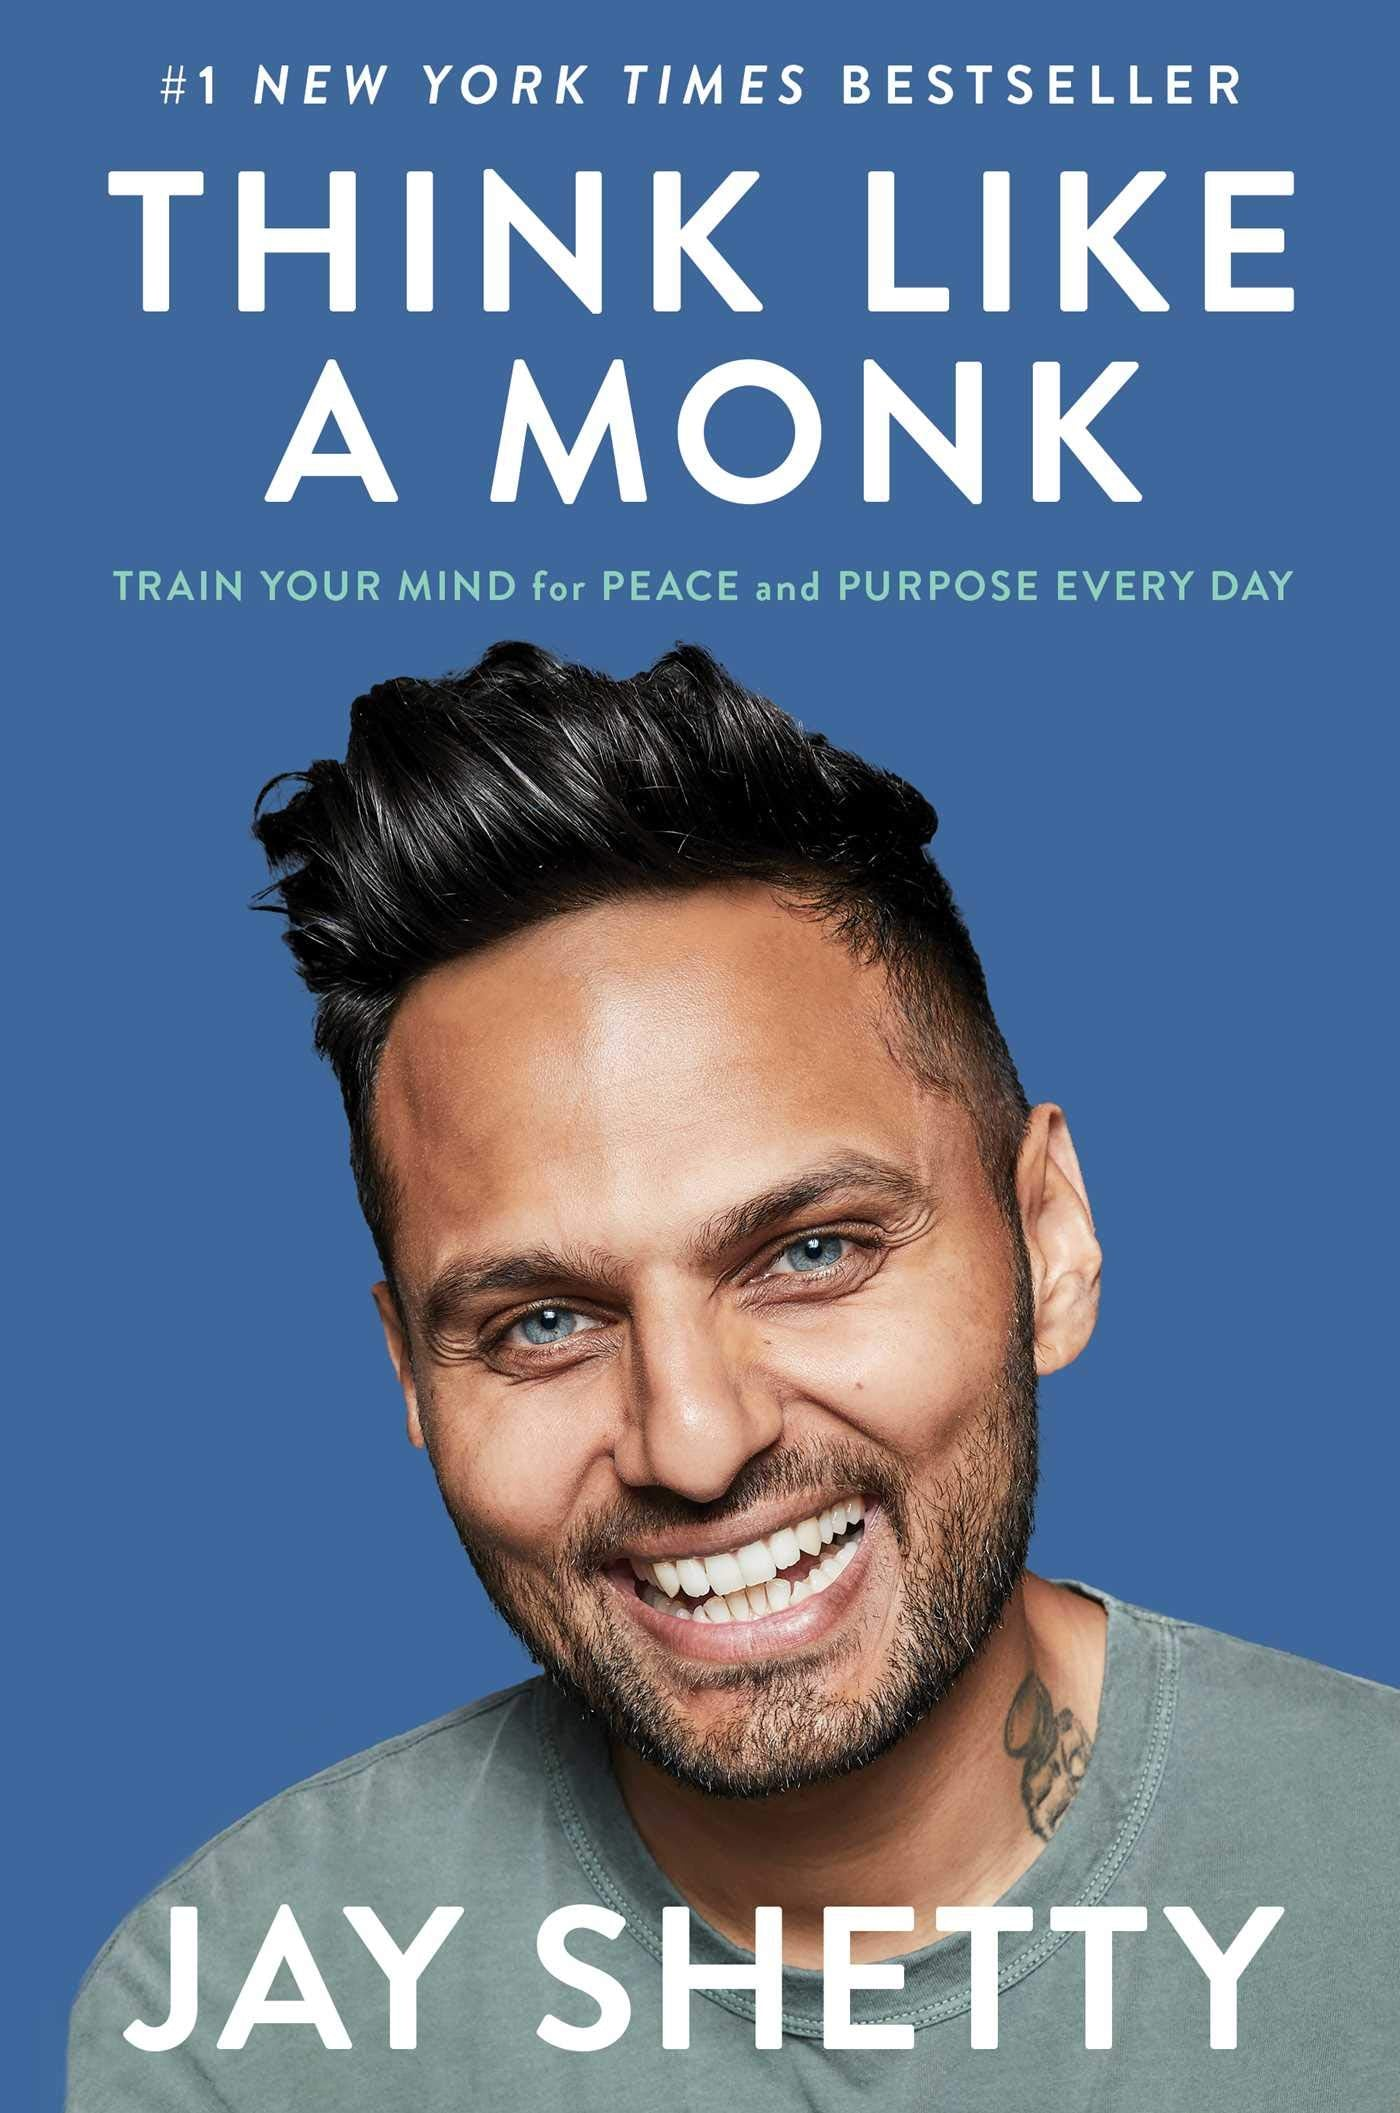 Think Like a Monk; Jay Shetty